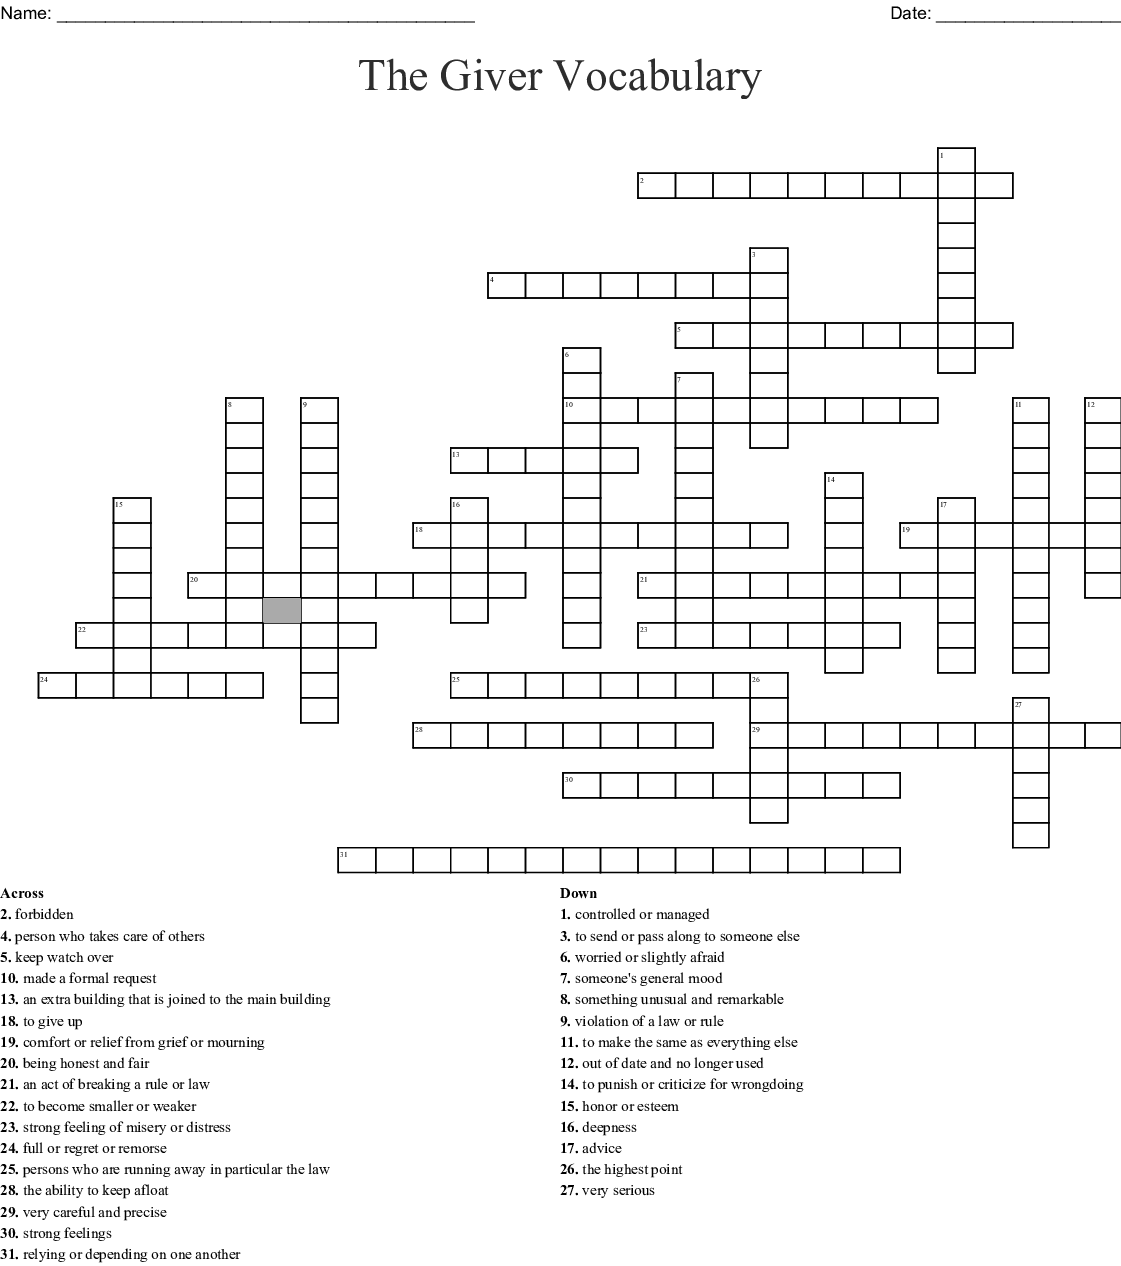 The Giver Vocabulary Crossword Wordmint